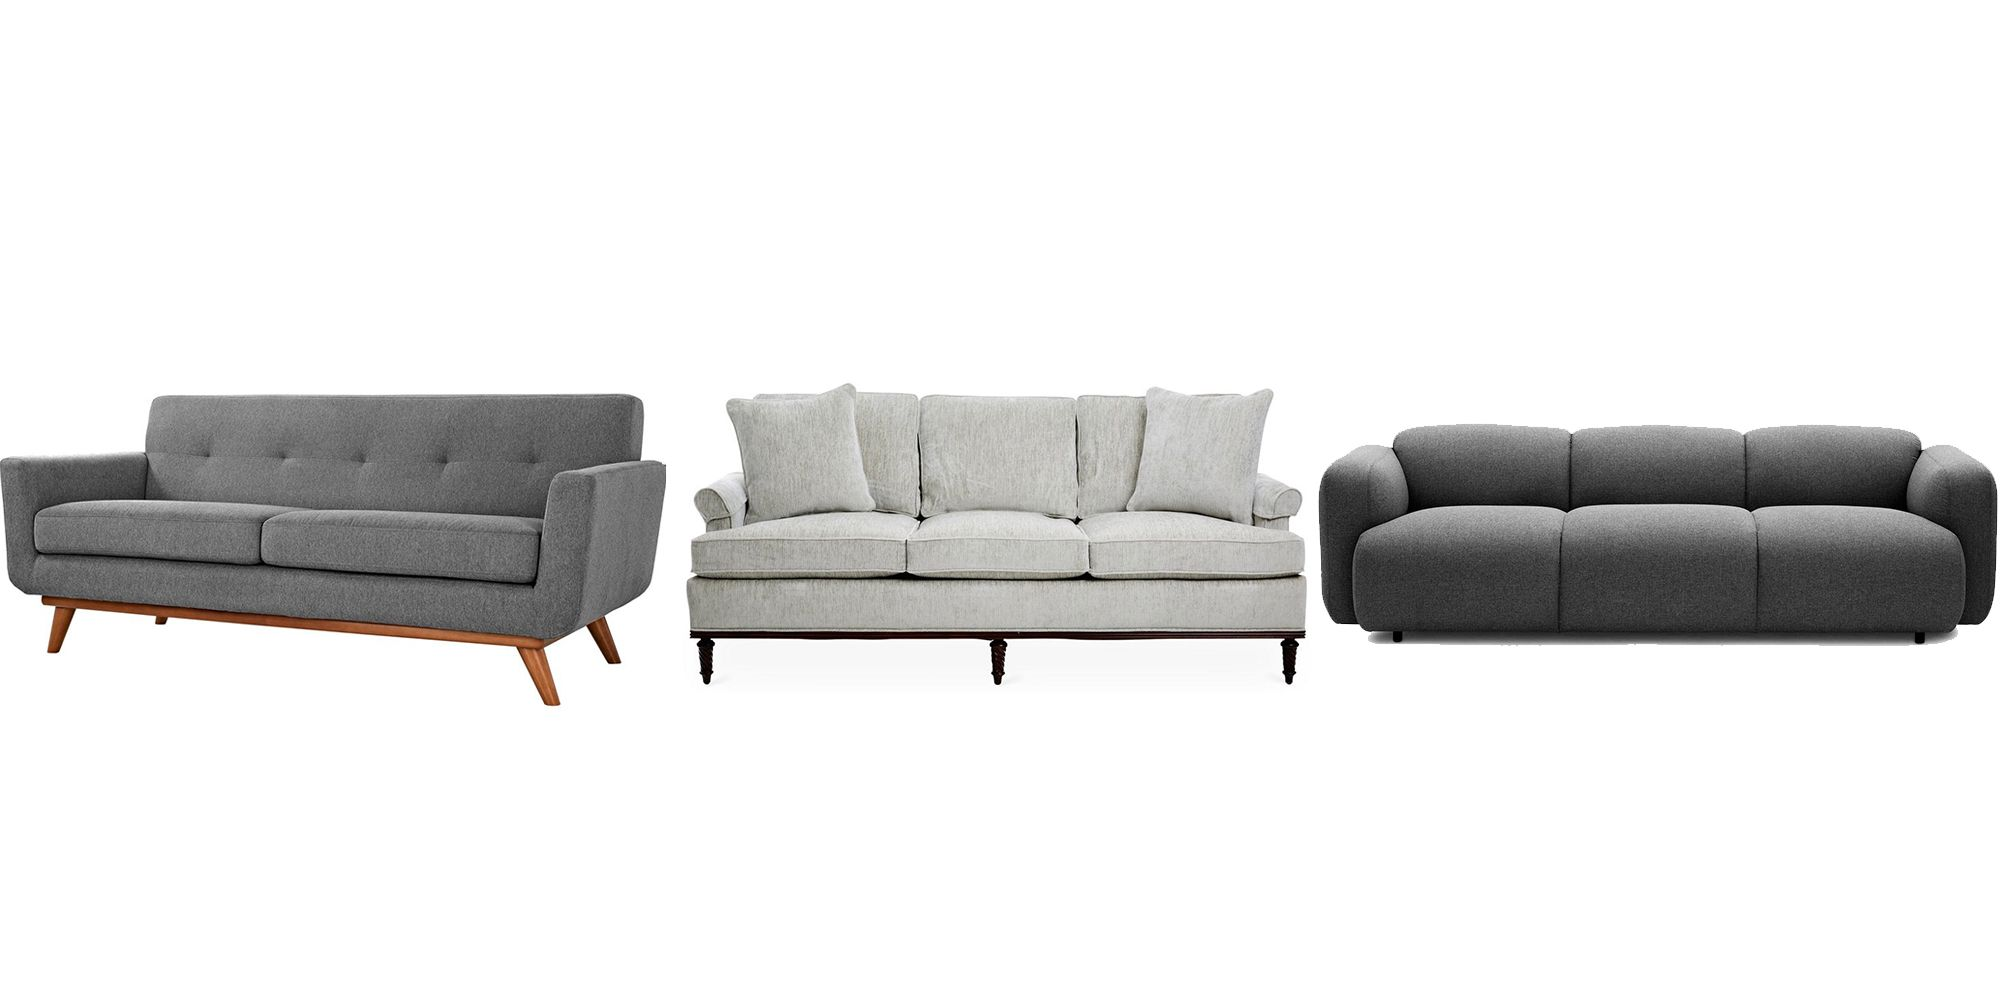 Watch living rooms from hgtv purple formal living room 03:08 purple formal living room 03:08 soft purple tones make sarah's enlarged living room formal but not fussy. 25 Grey Sofa Ideas for Living Room - Grey Couches For Sale